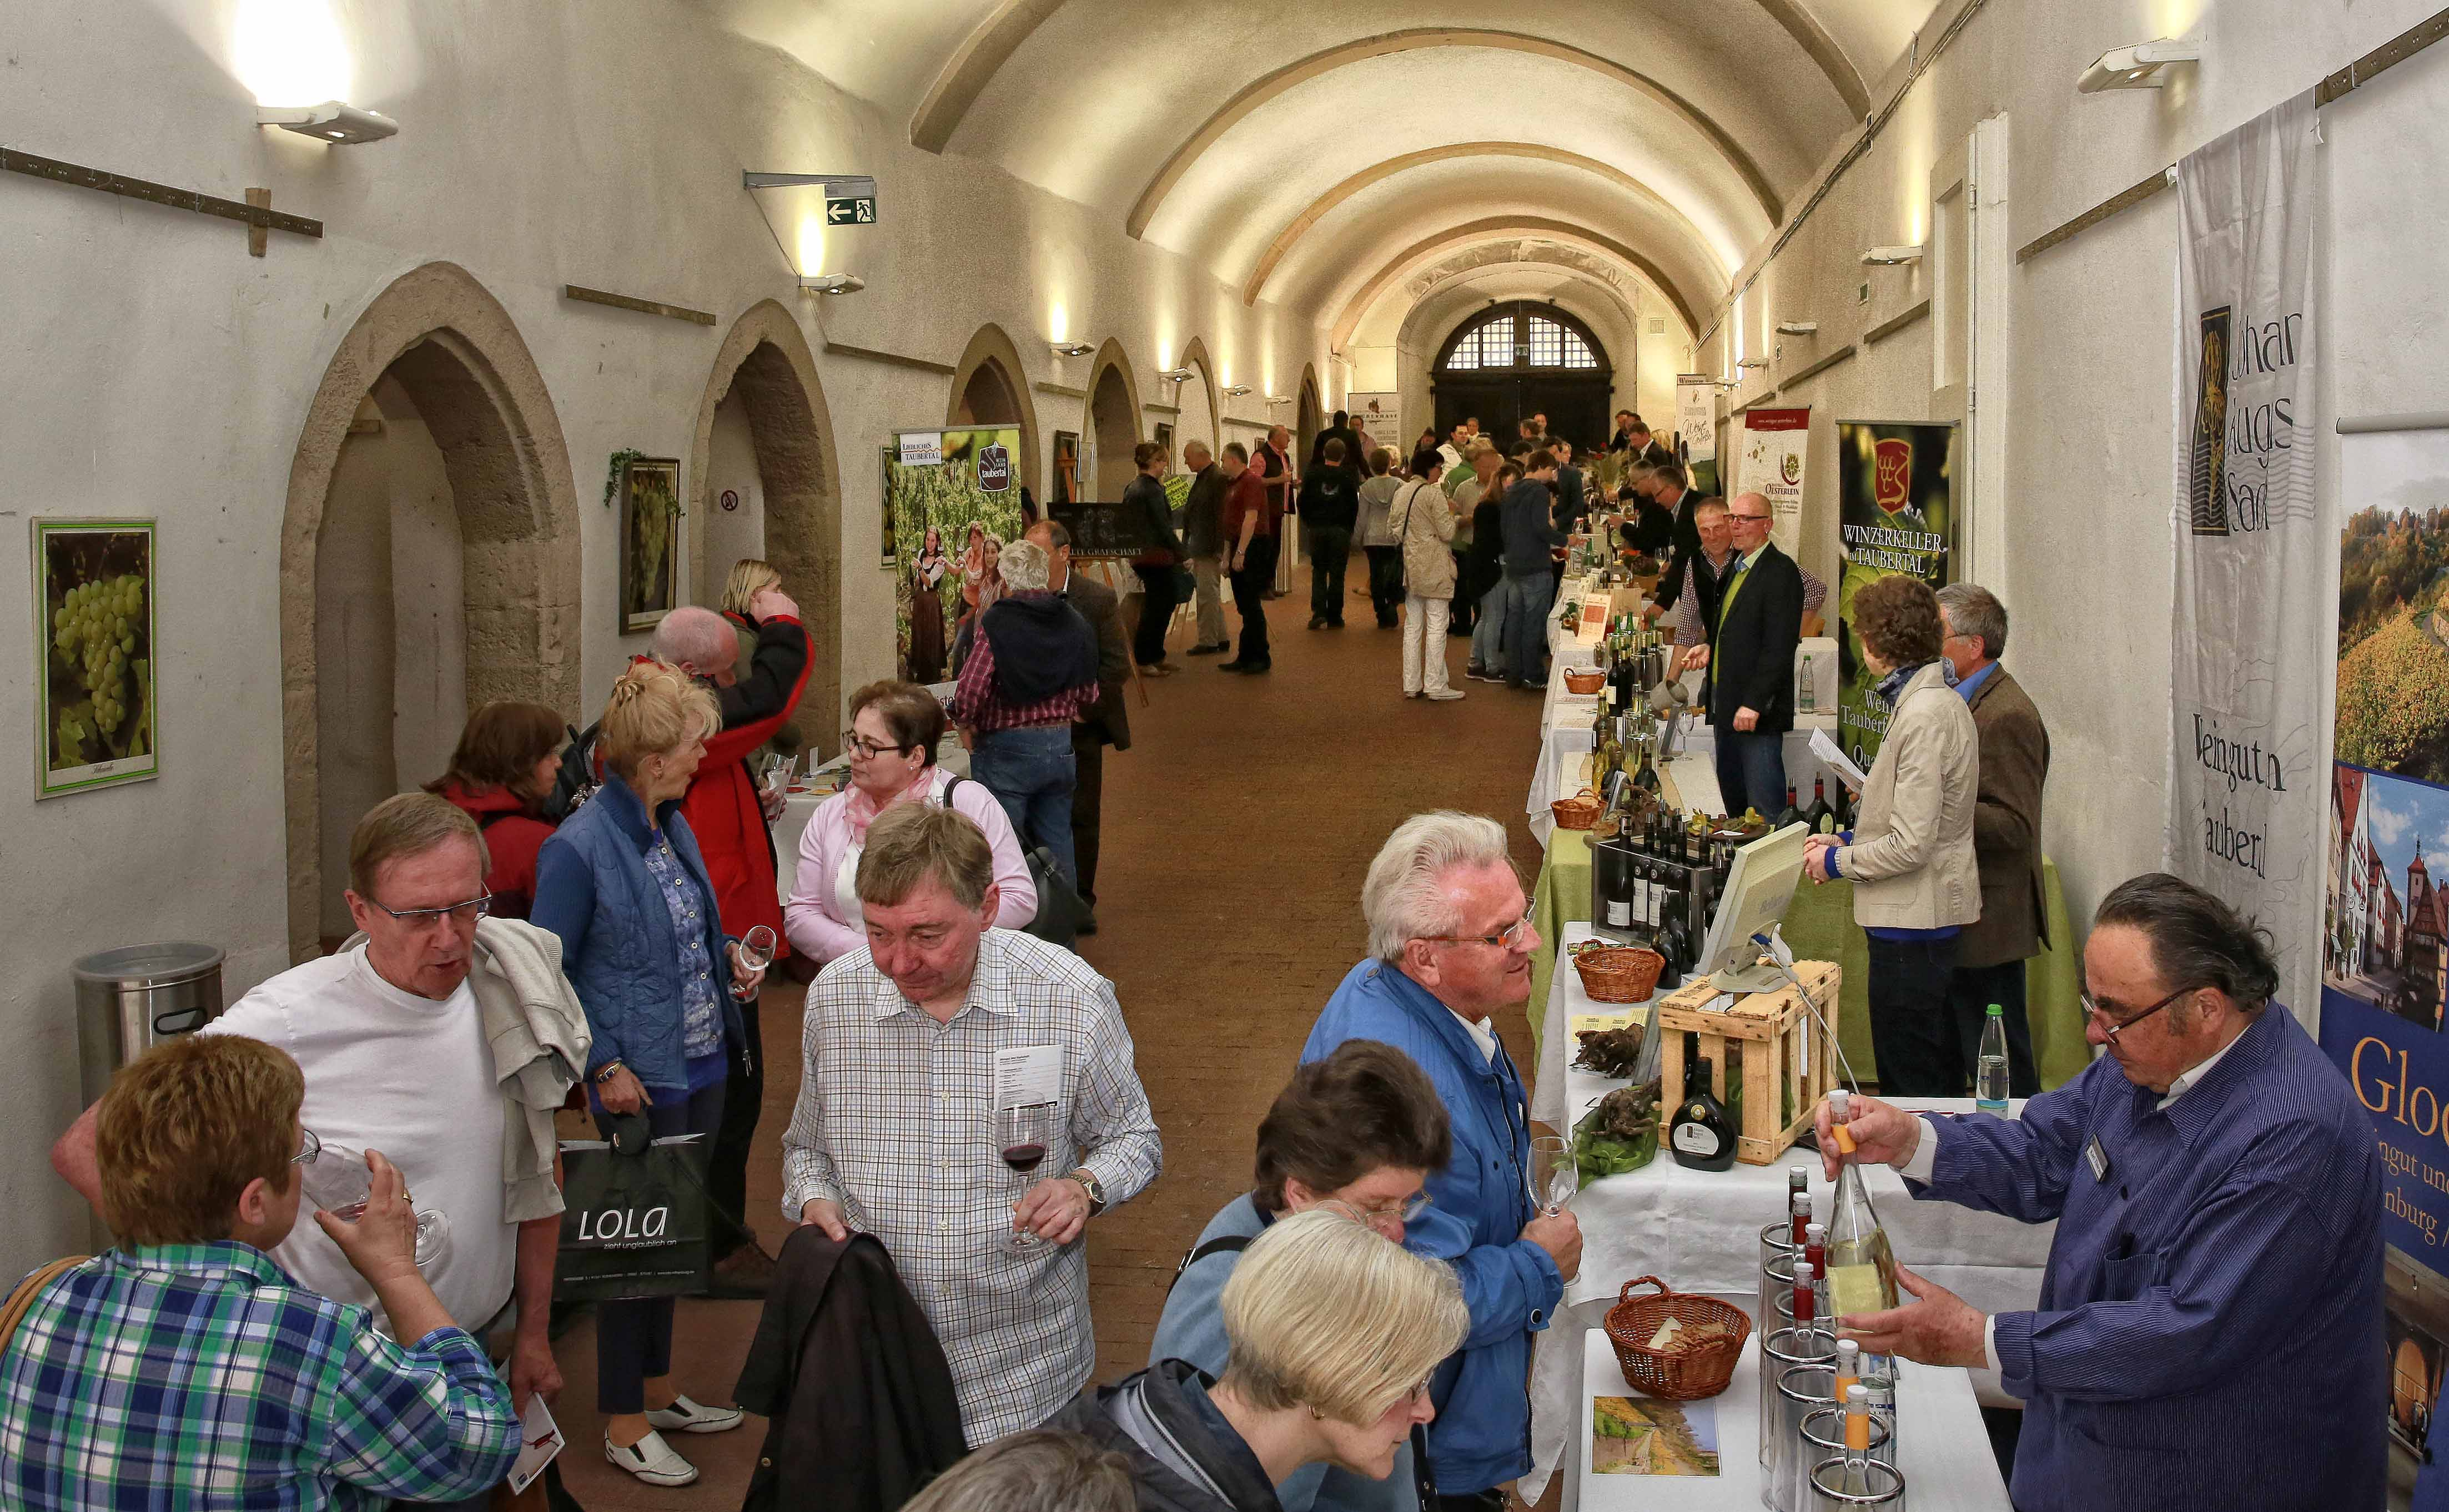 Convention at the vault of the city hall in Rothenburg ob der Tauber